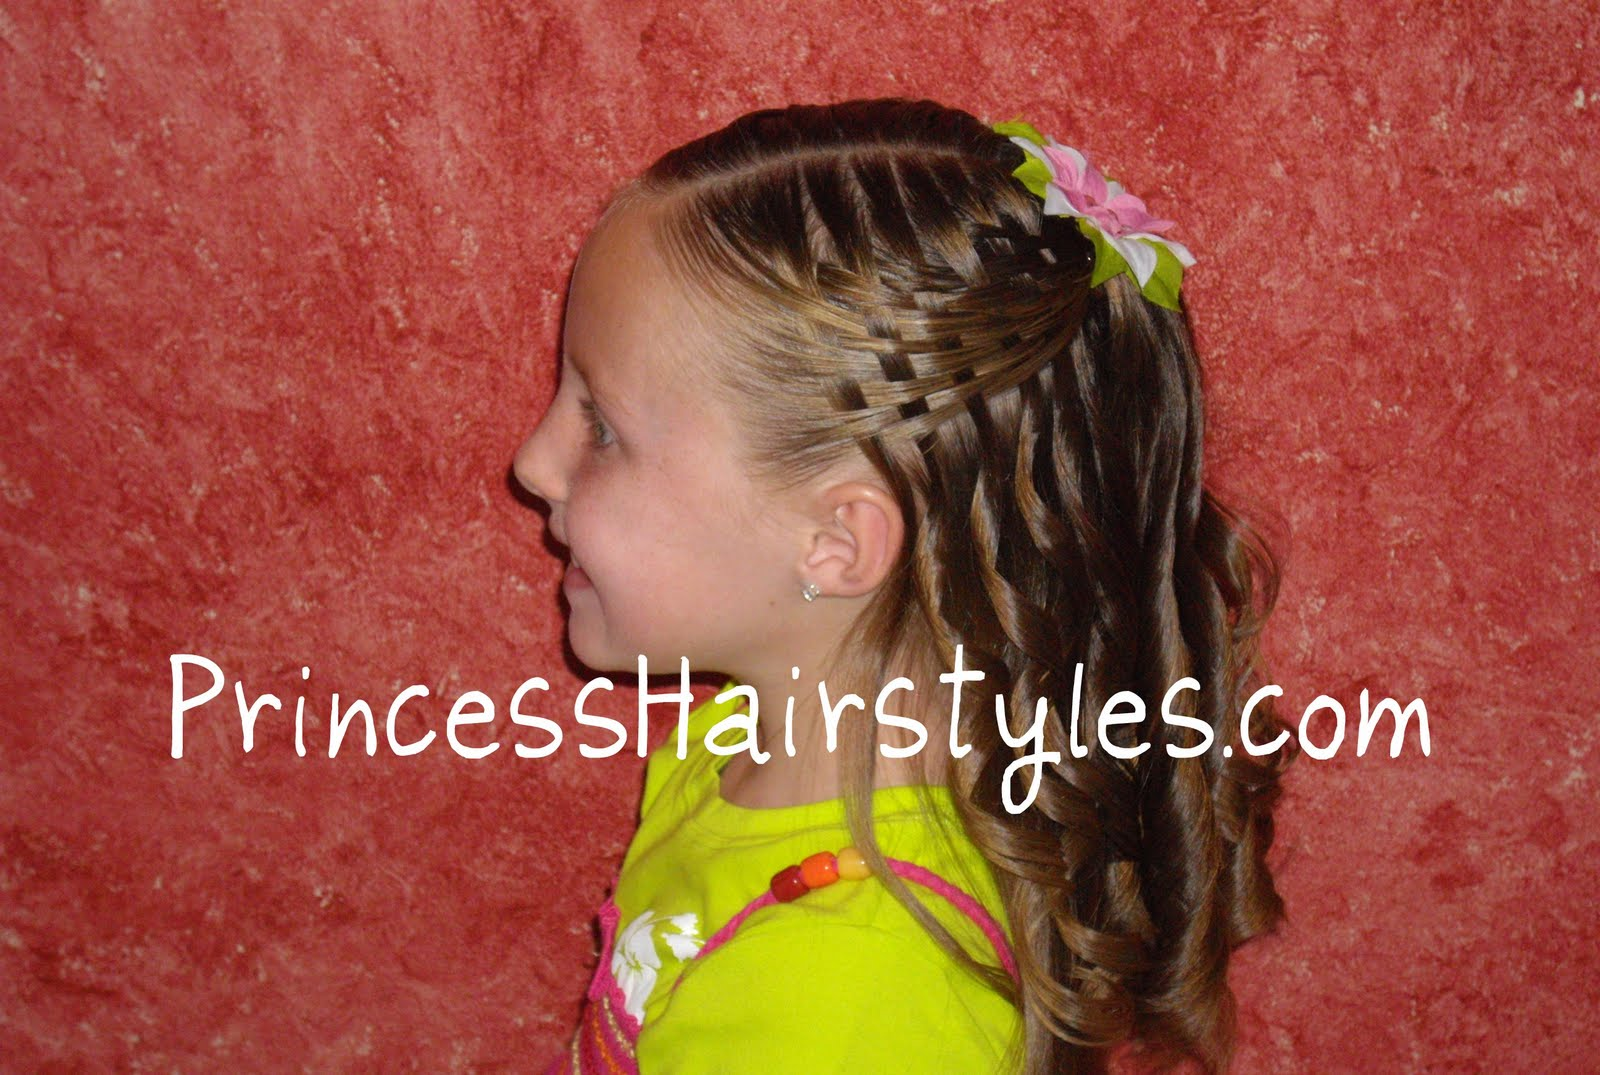 Hairstyles For Girls Princess Hairstyles Basket Weave Hairstyle Video